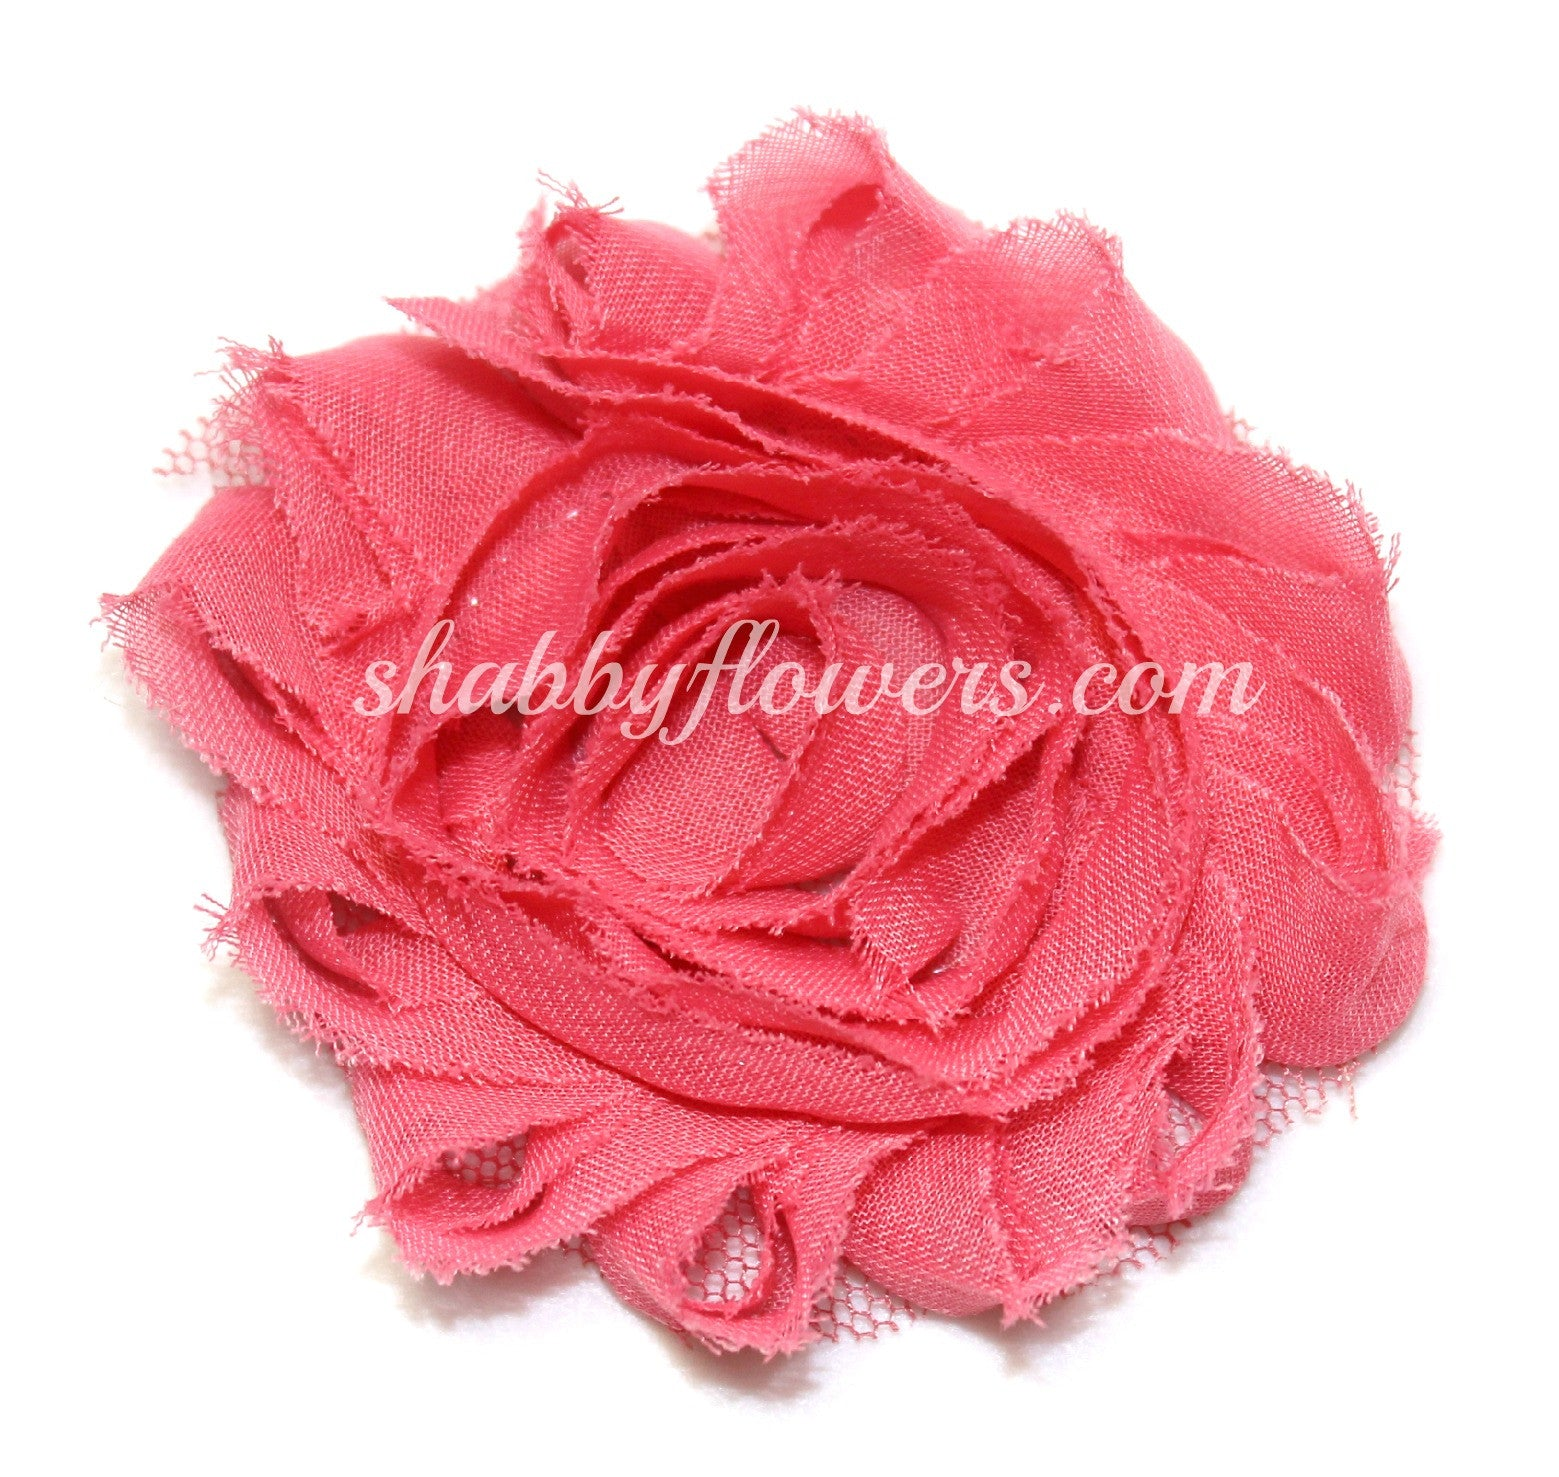 Shabby Flower - Watermelon - shabbyflowers.com